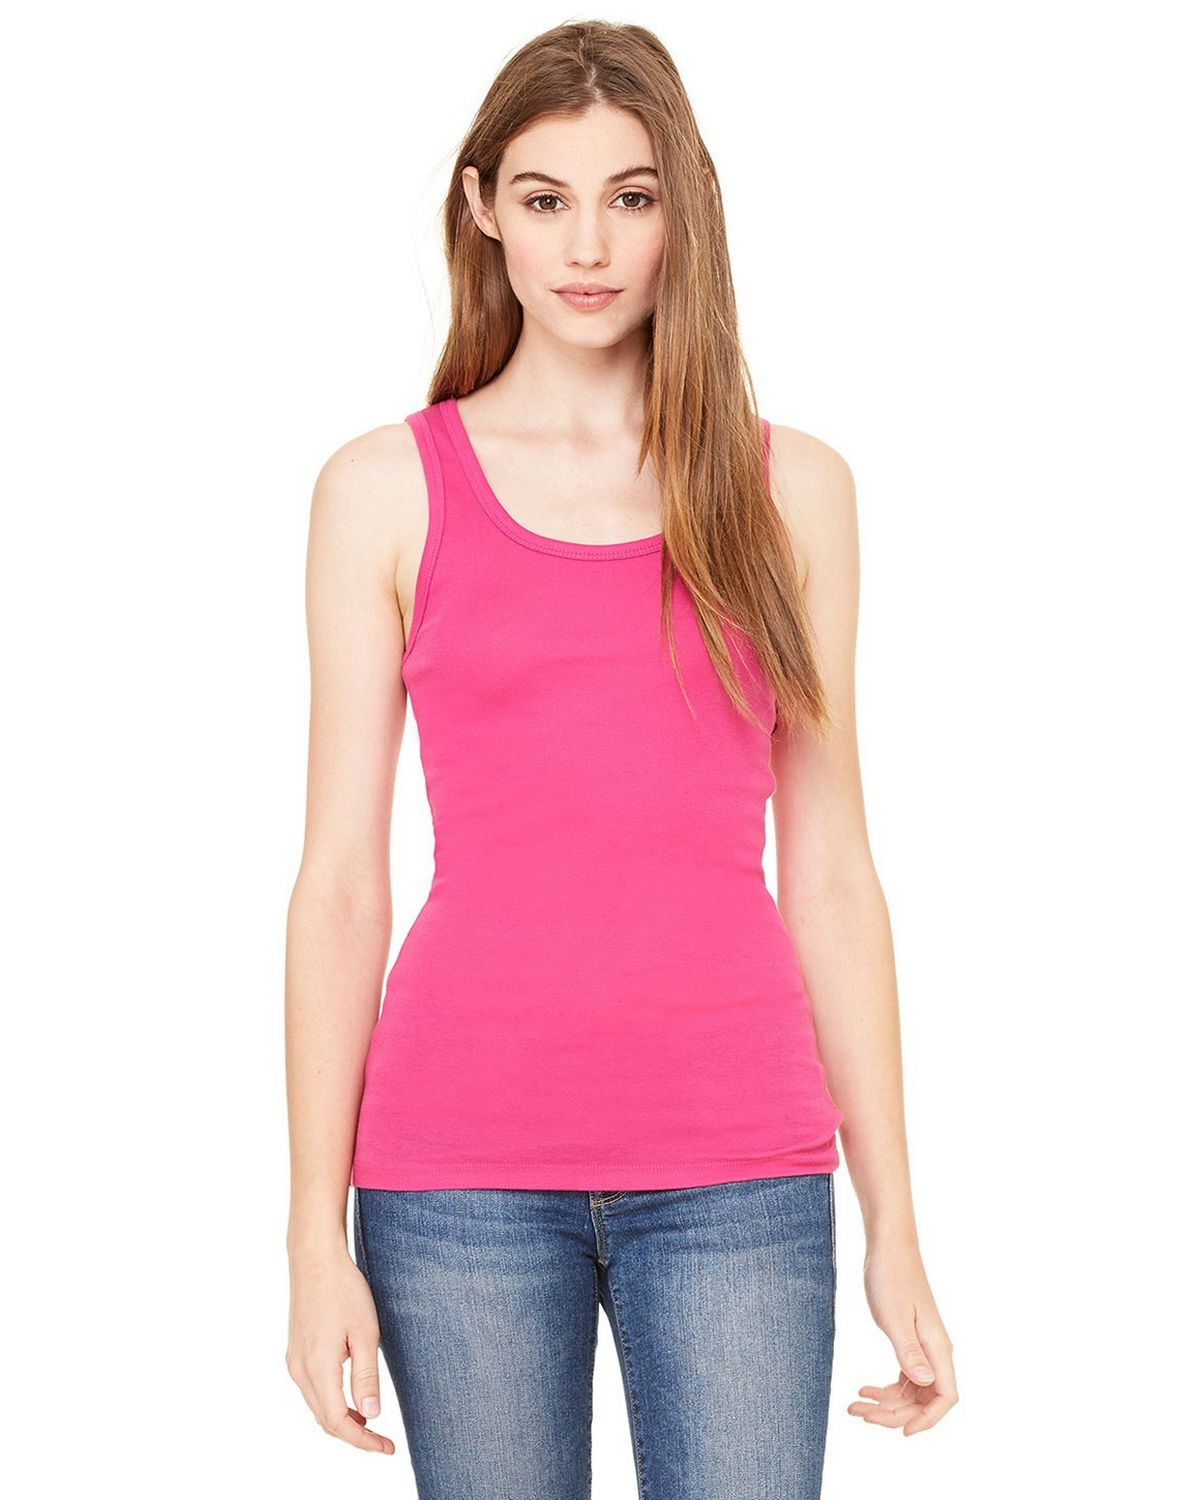 Bella + Canvas 8780 Sheer Rib Longer Tank - Berry - S 8780